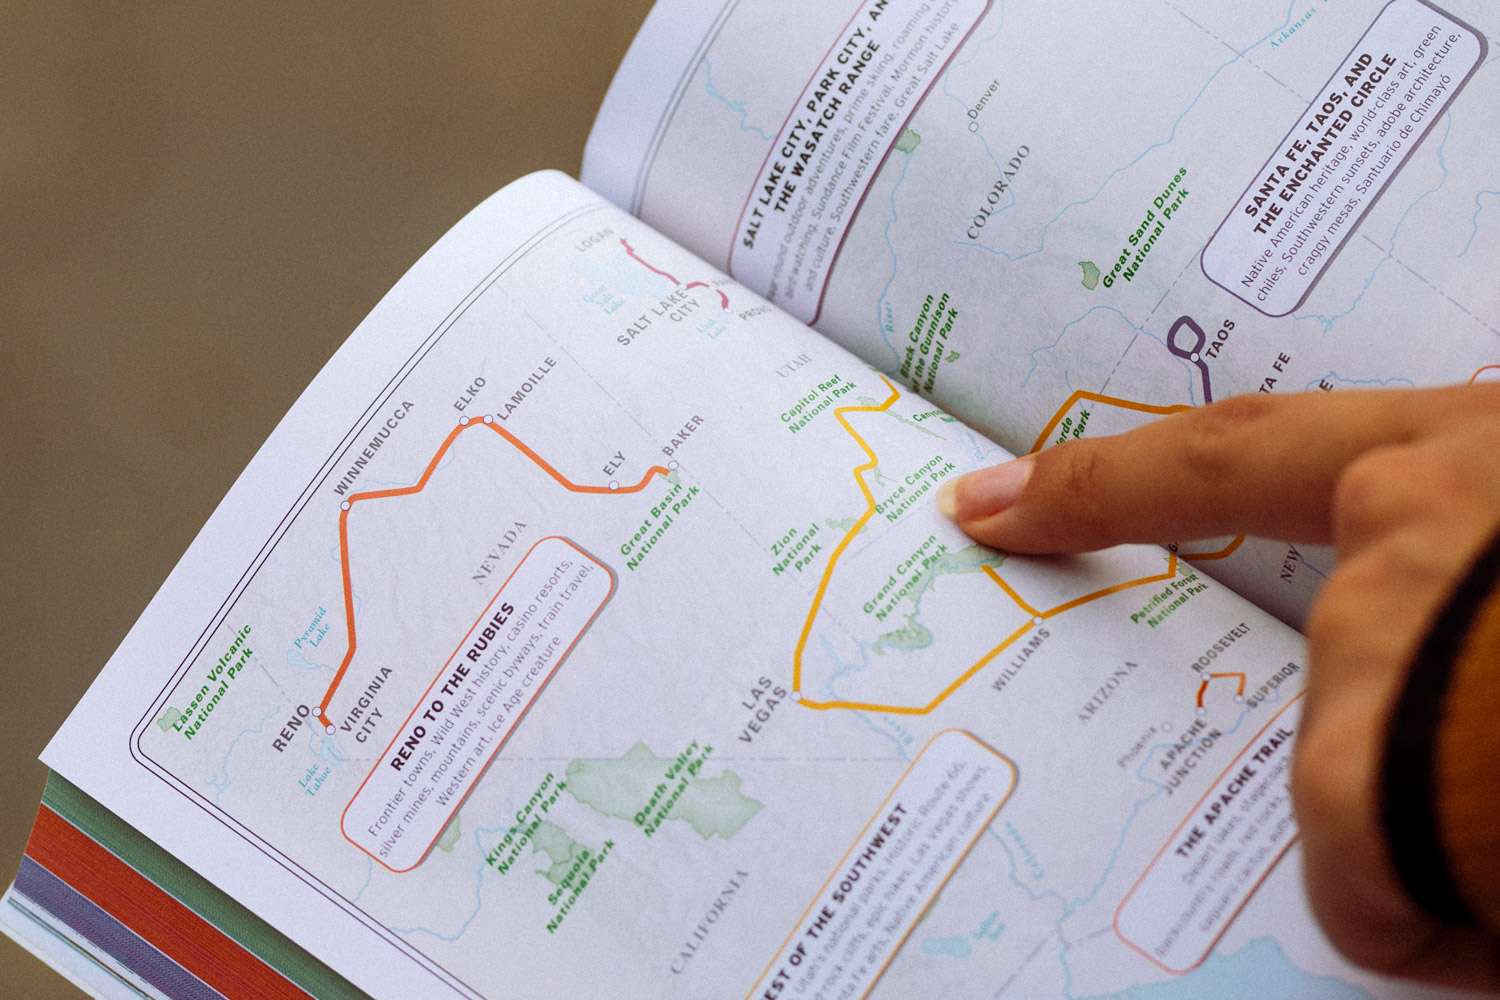 Rachel Off Duty: Pointing at A Road Trip Route in a Guidebook